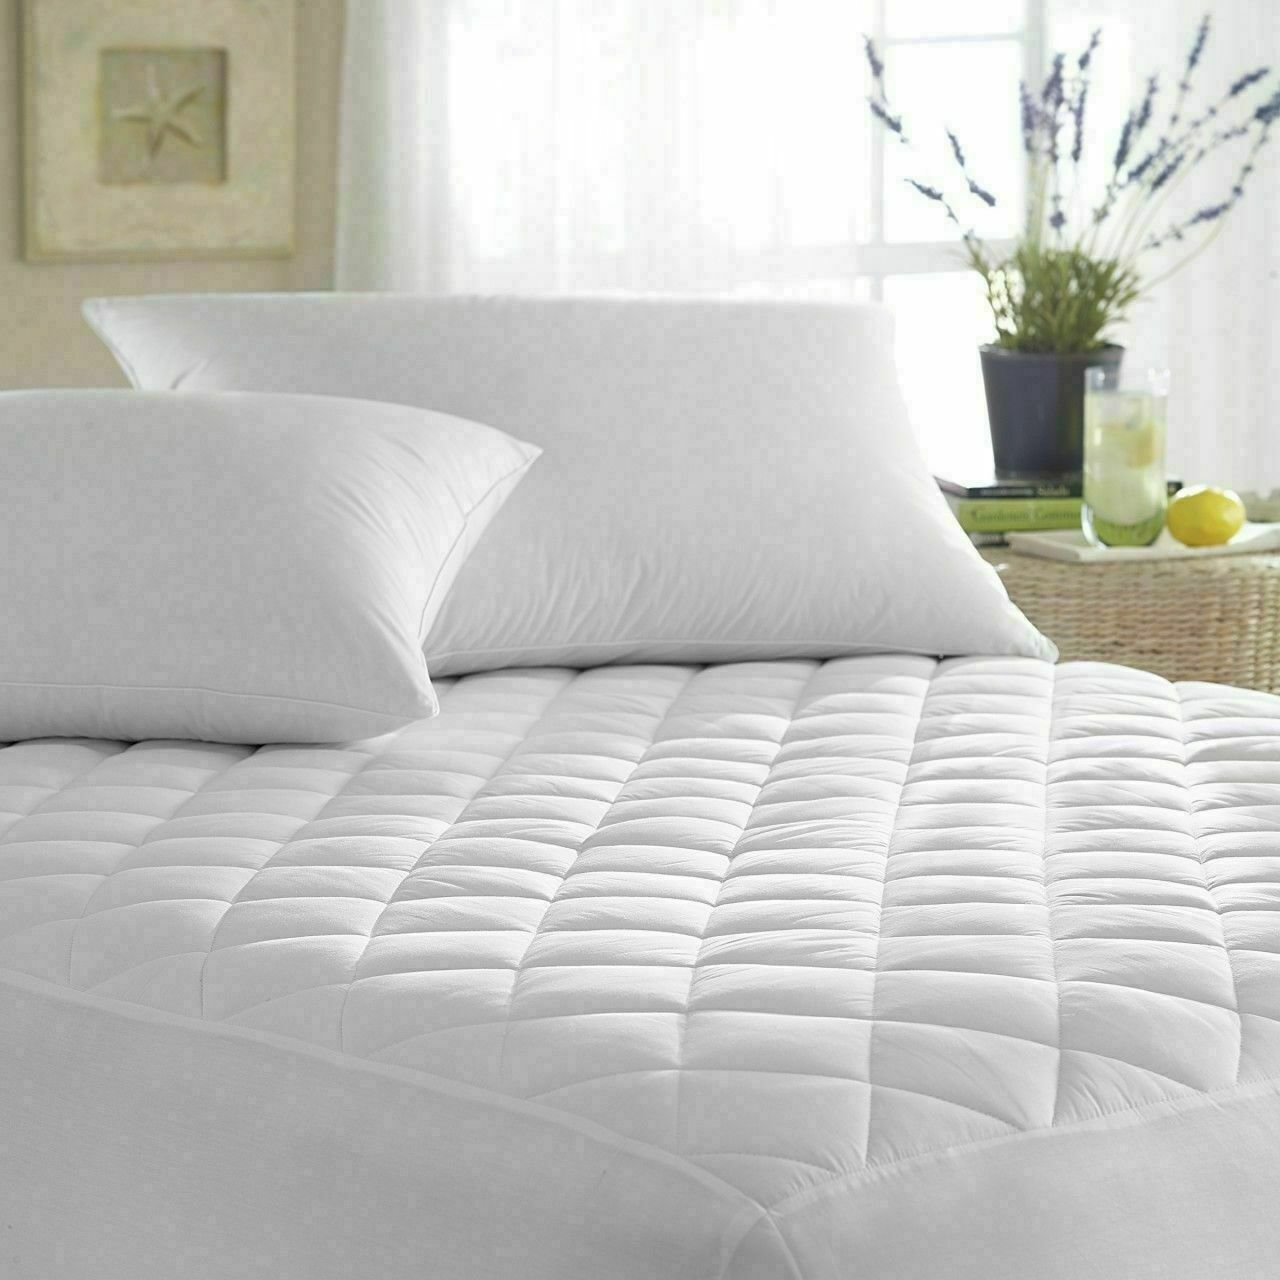 Waterproof Mattress Protector Bed Soft Mattress Cover Deep Fitted Pad King Queen For Sale Online